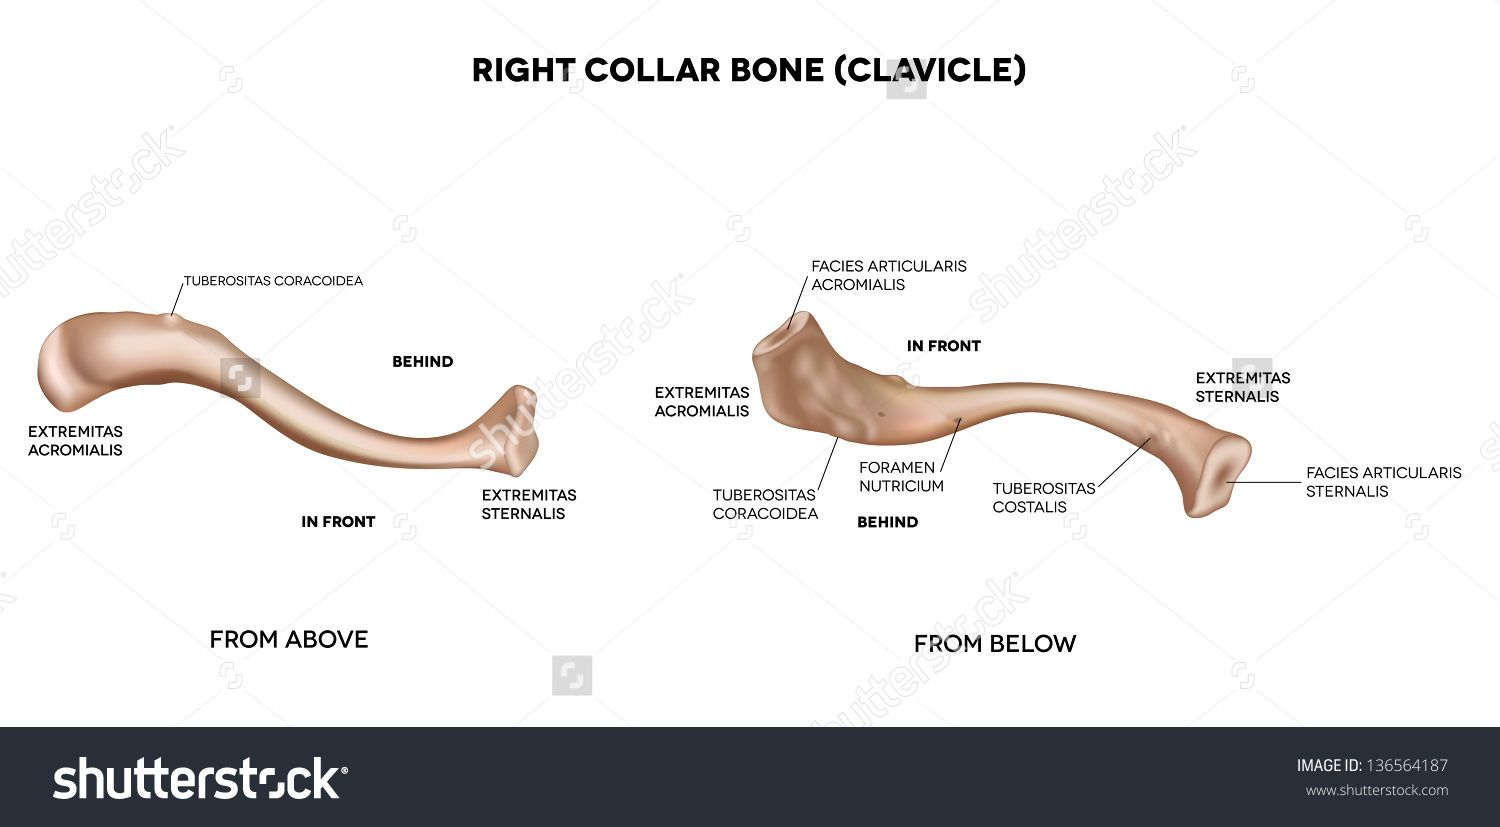 Anatomy Of The Clavicle Bone Clavicle Collar Bone Detailed Medical